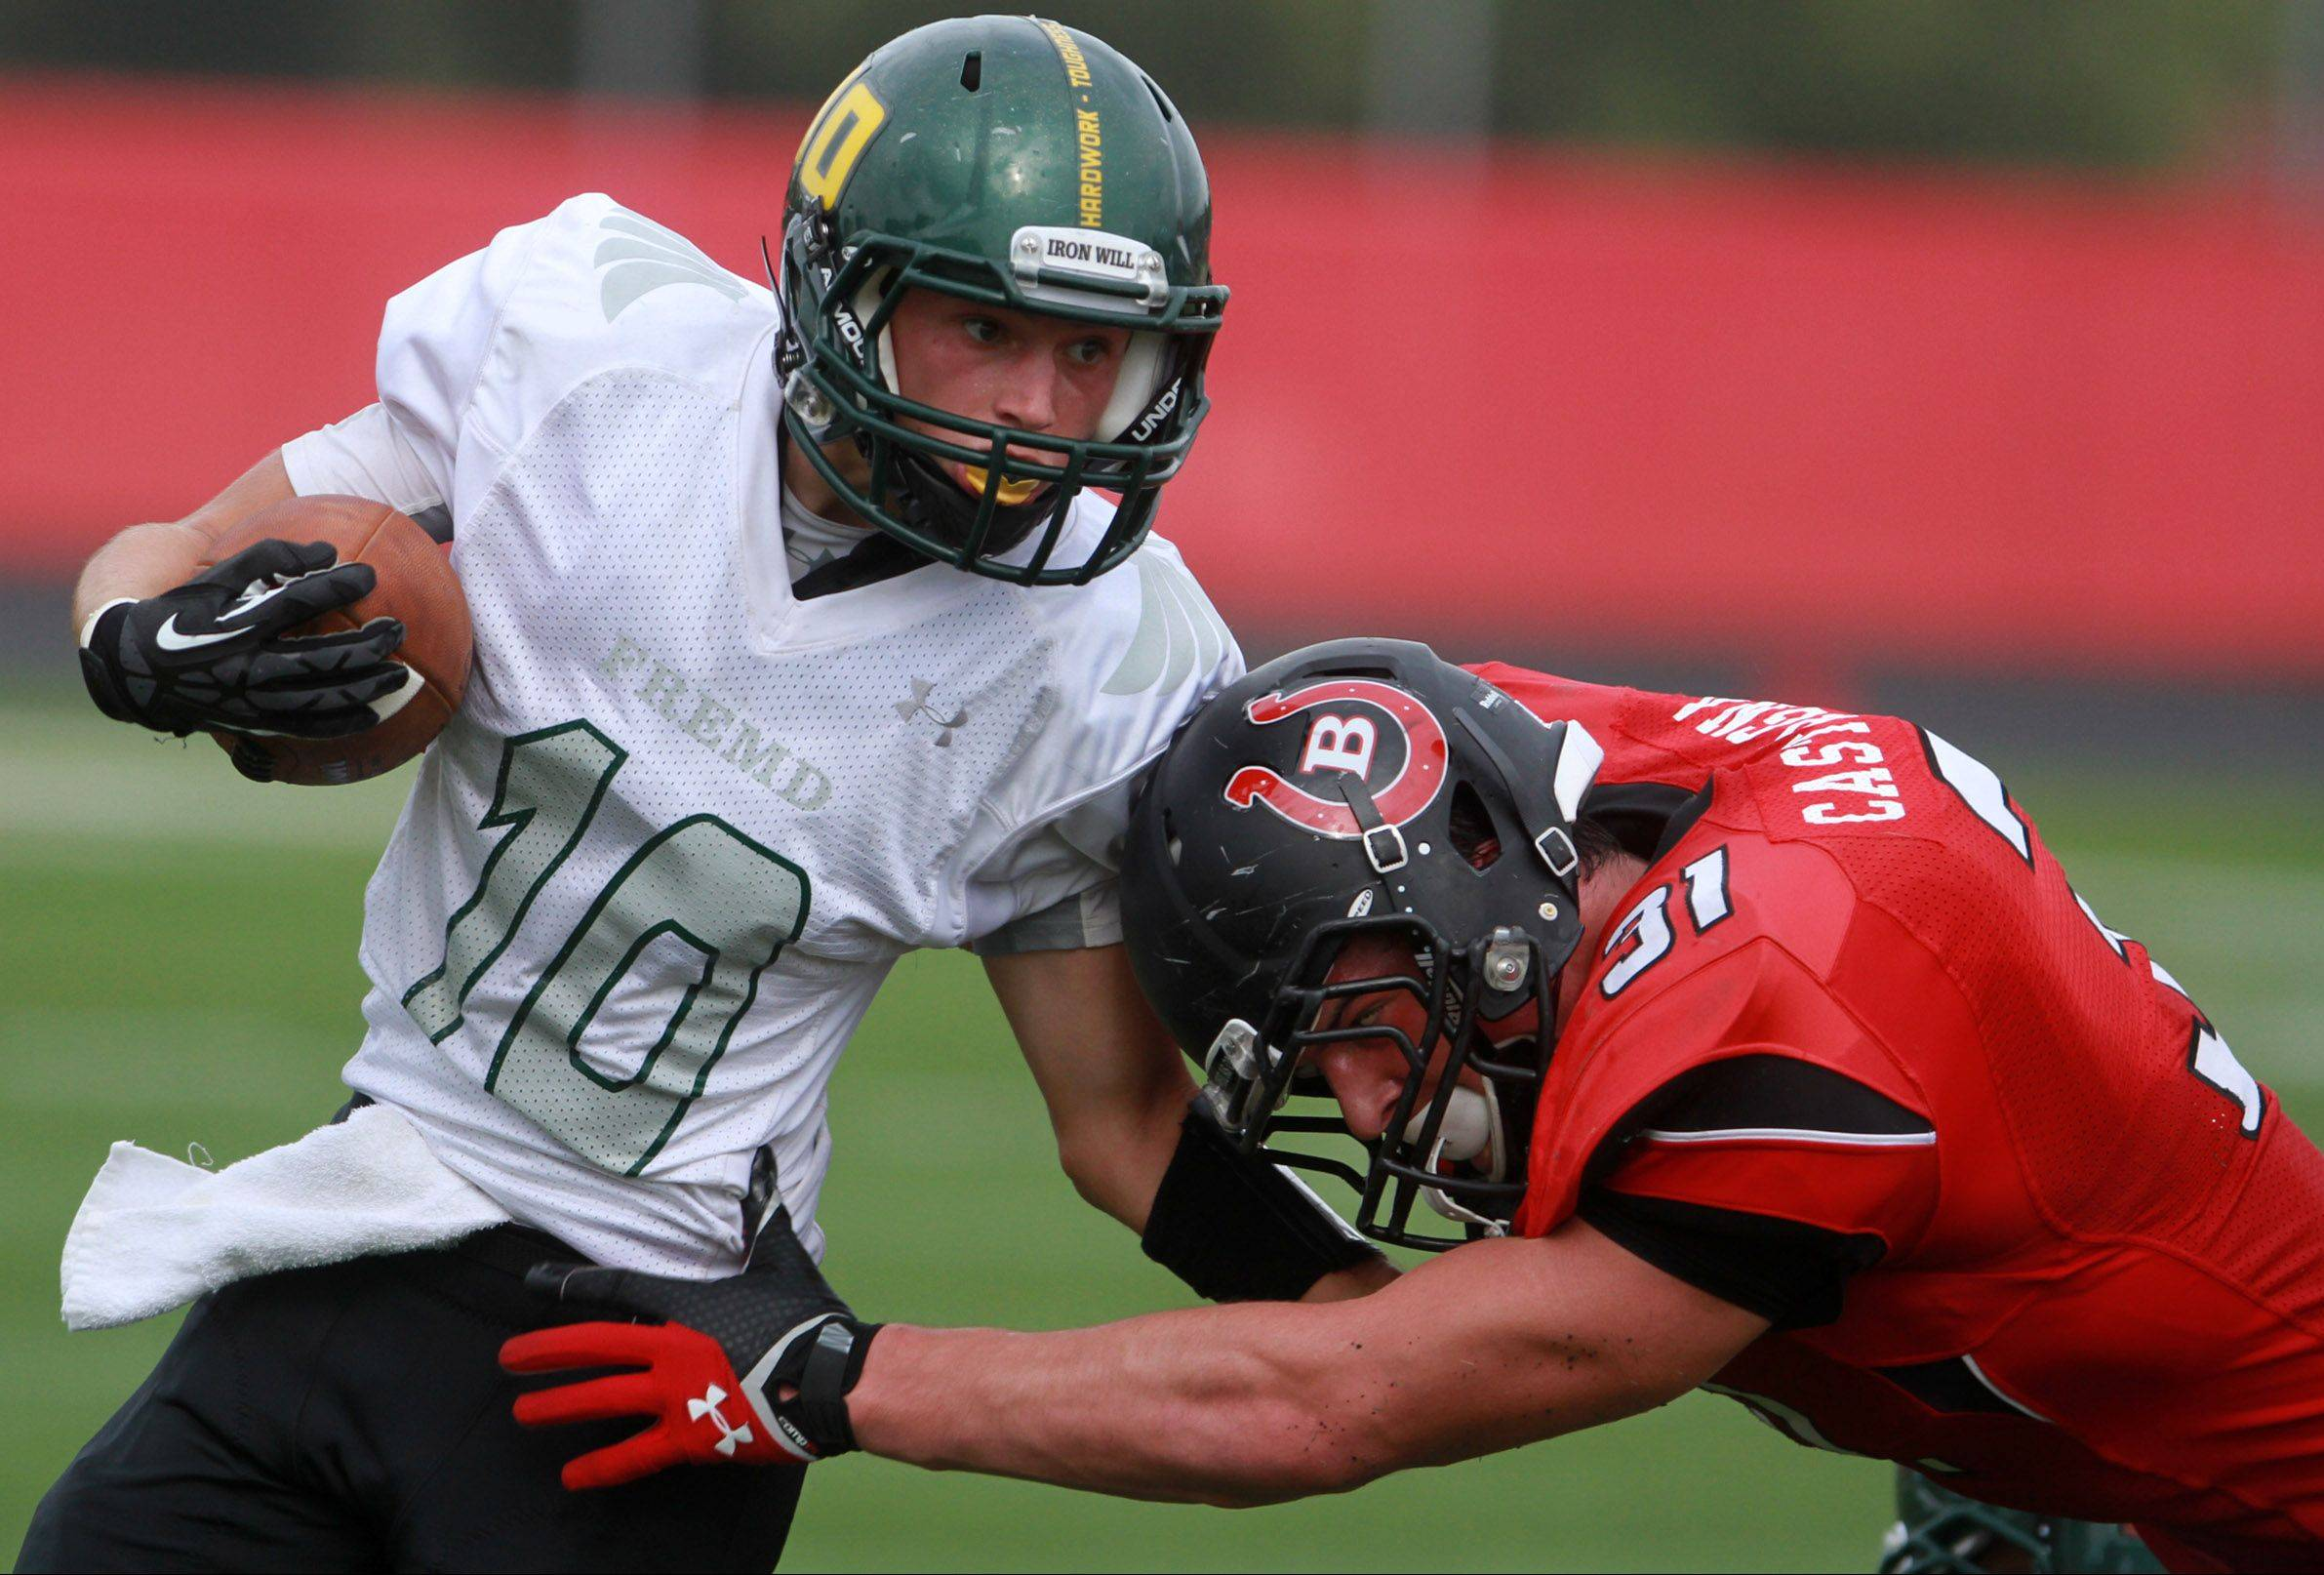 Fremd receiver Anthony Halvorsen is pulled down by Barrington defender Colin Castagna at Barrington on Saturday.